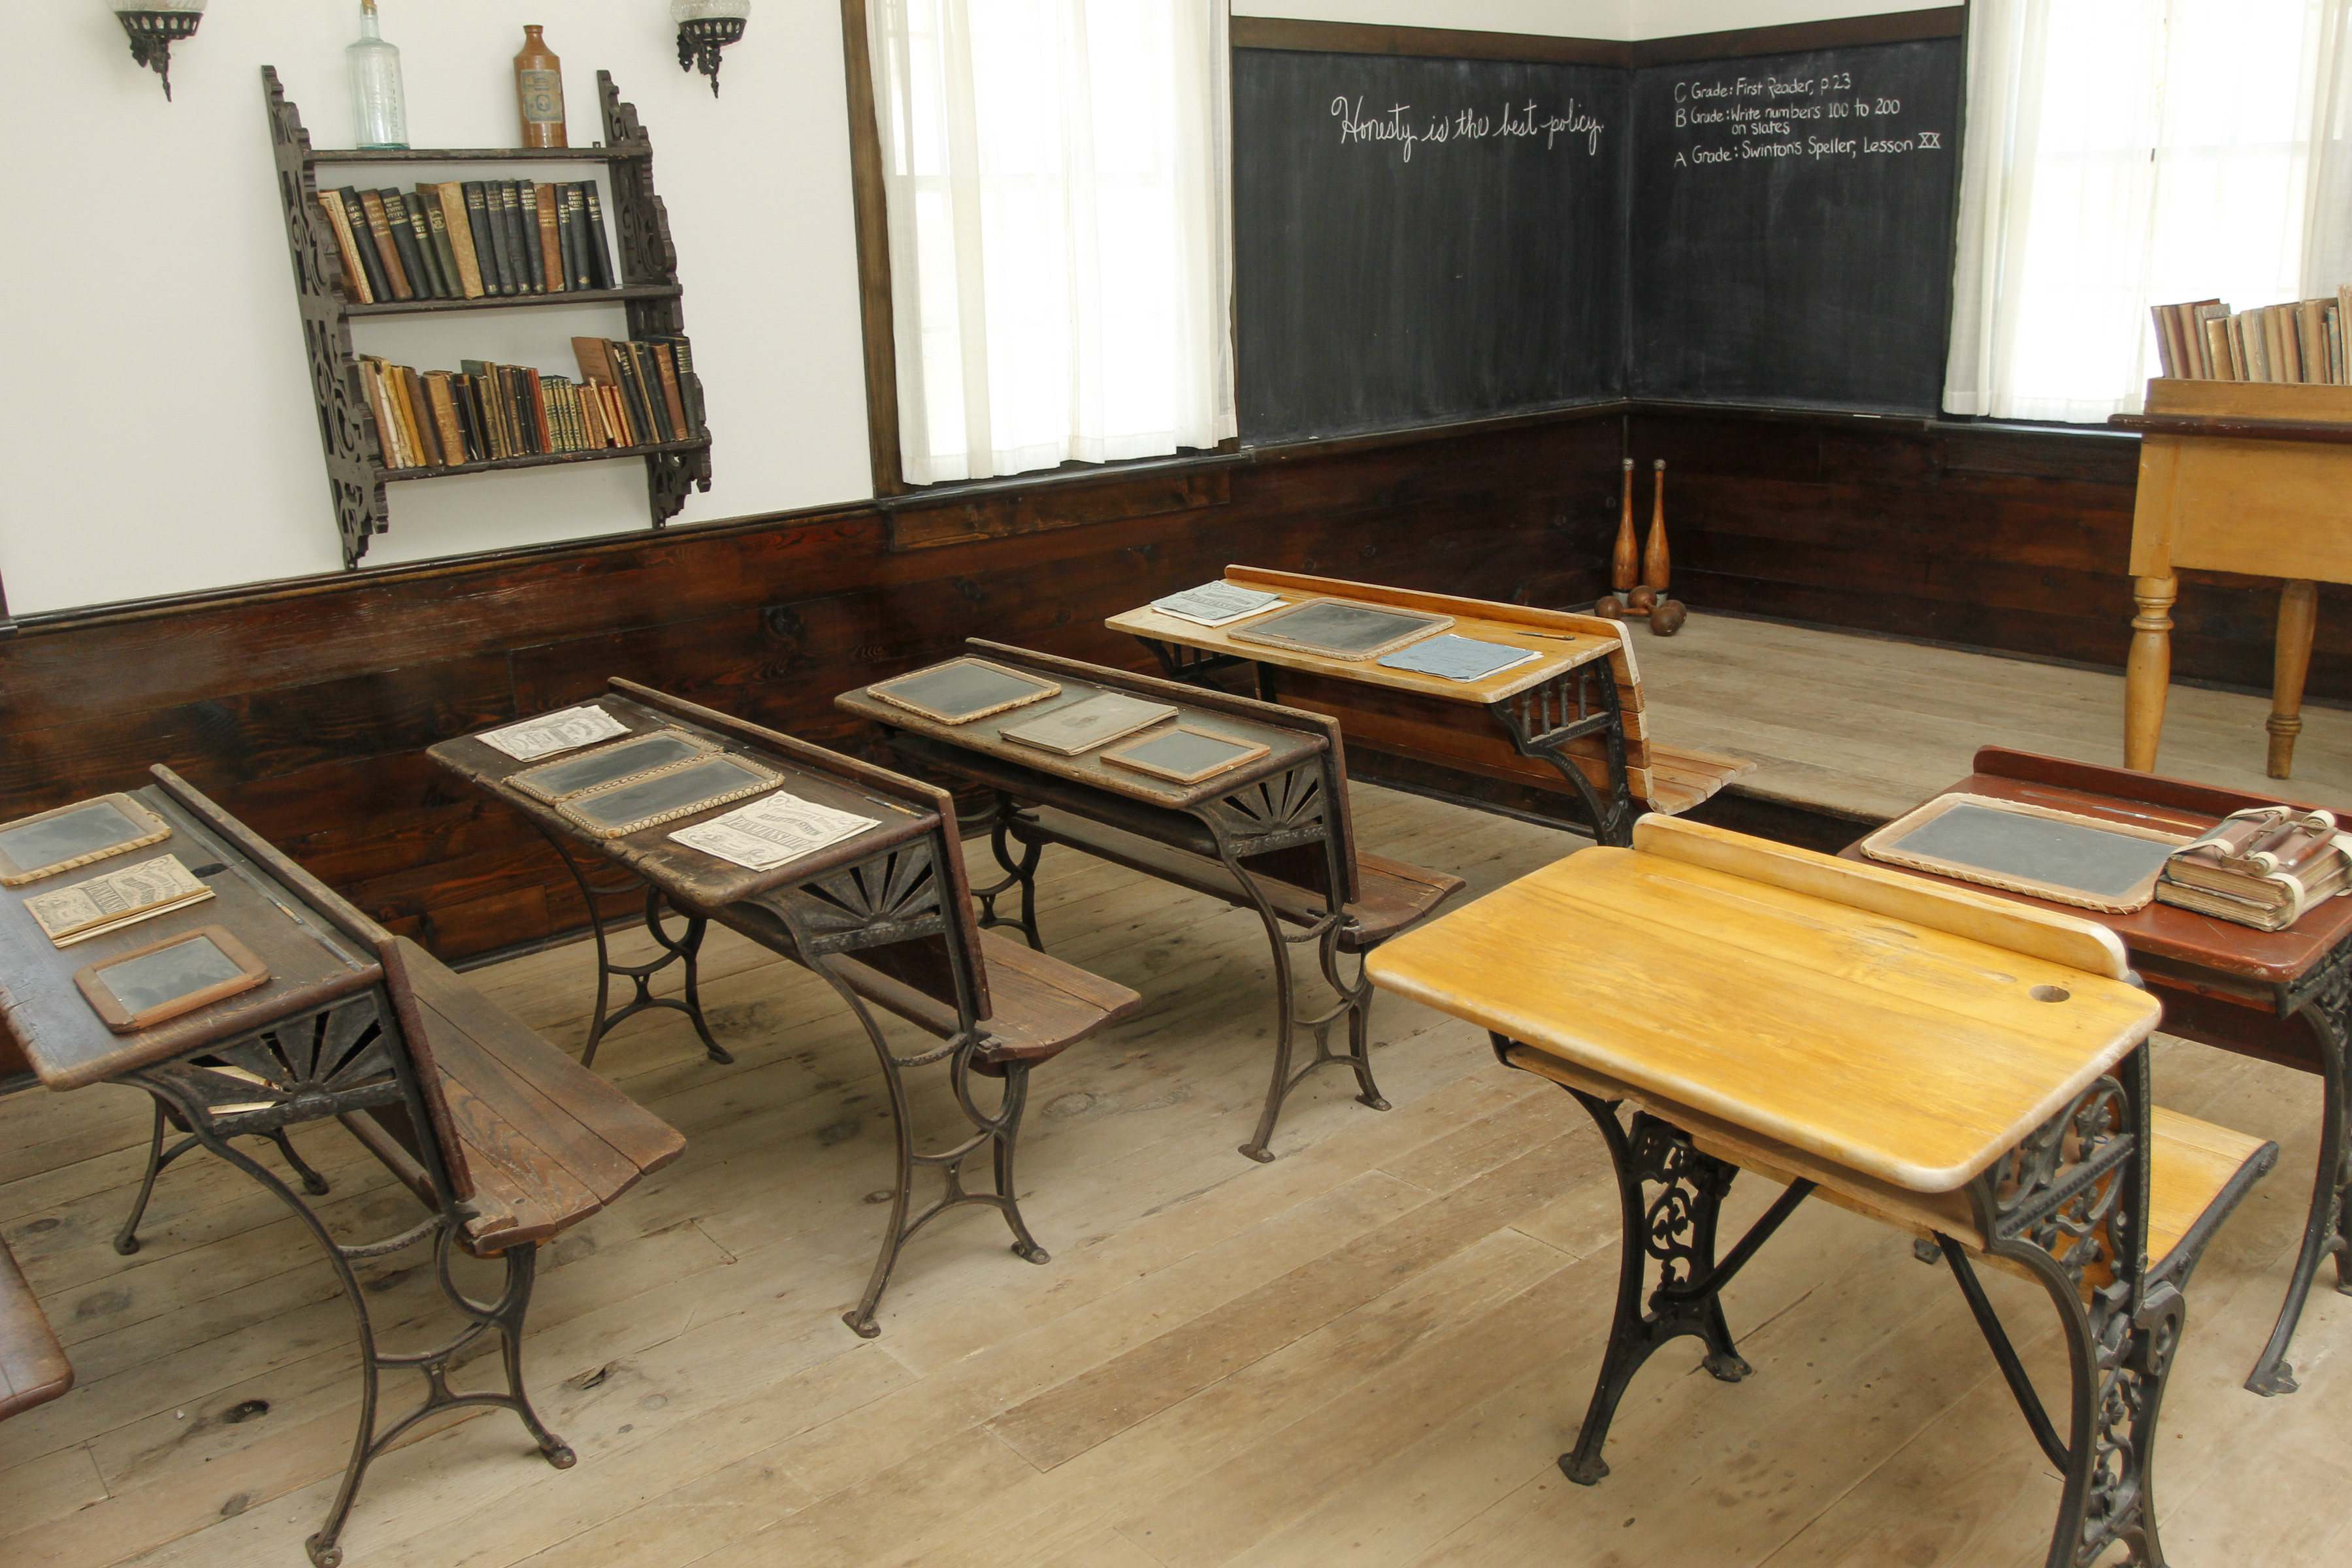 Inside the one-room schoolhouse